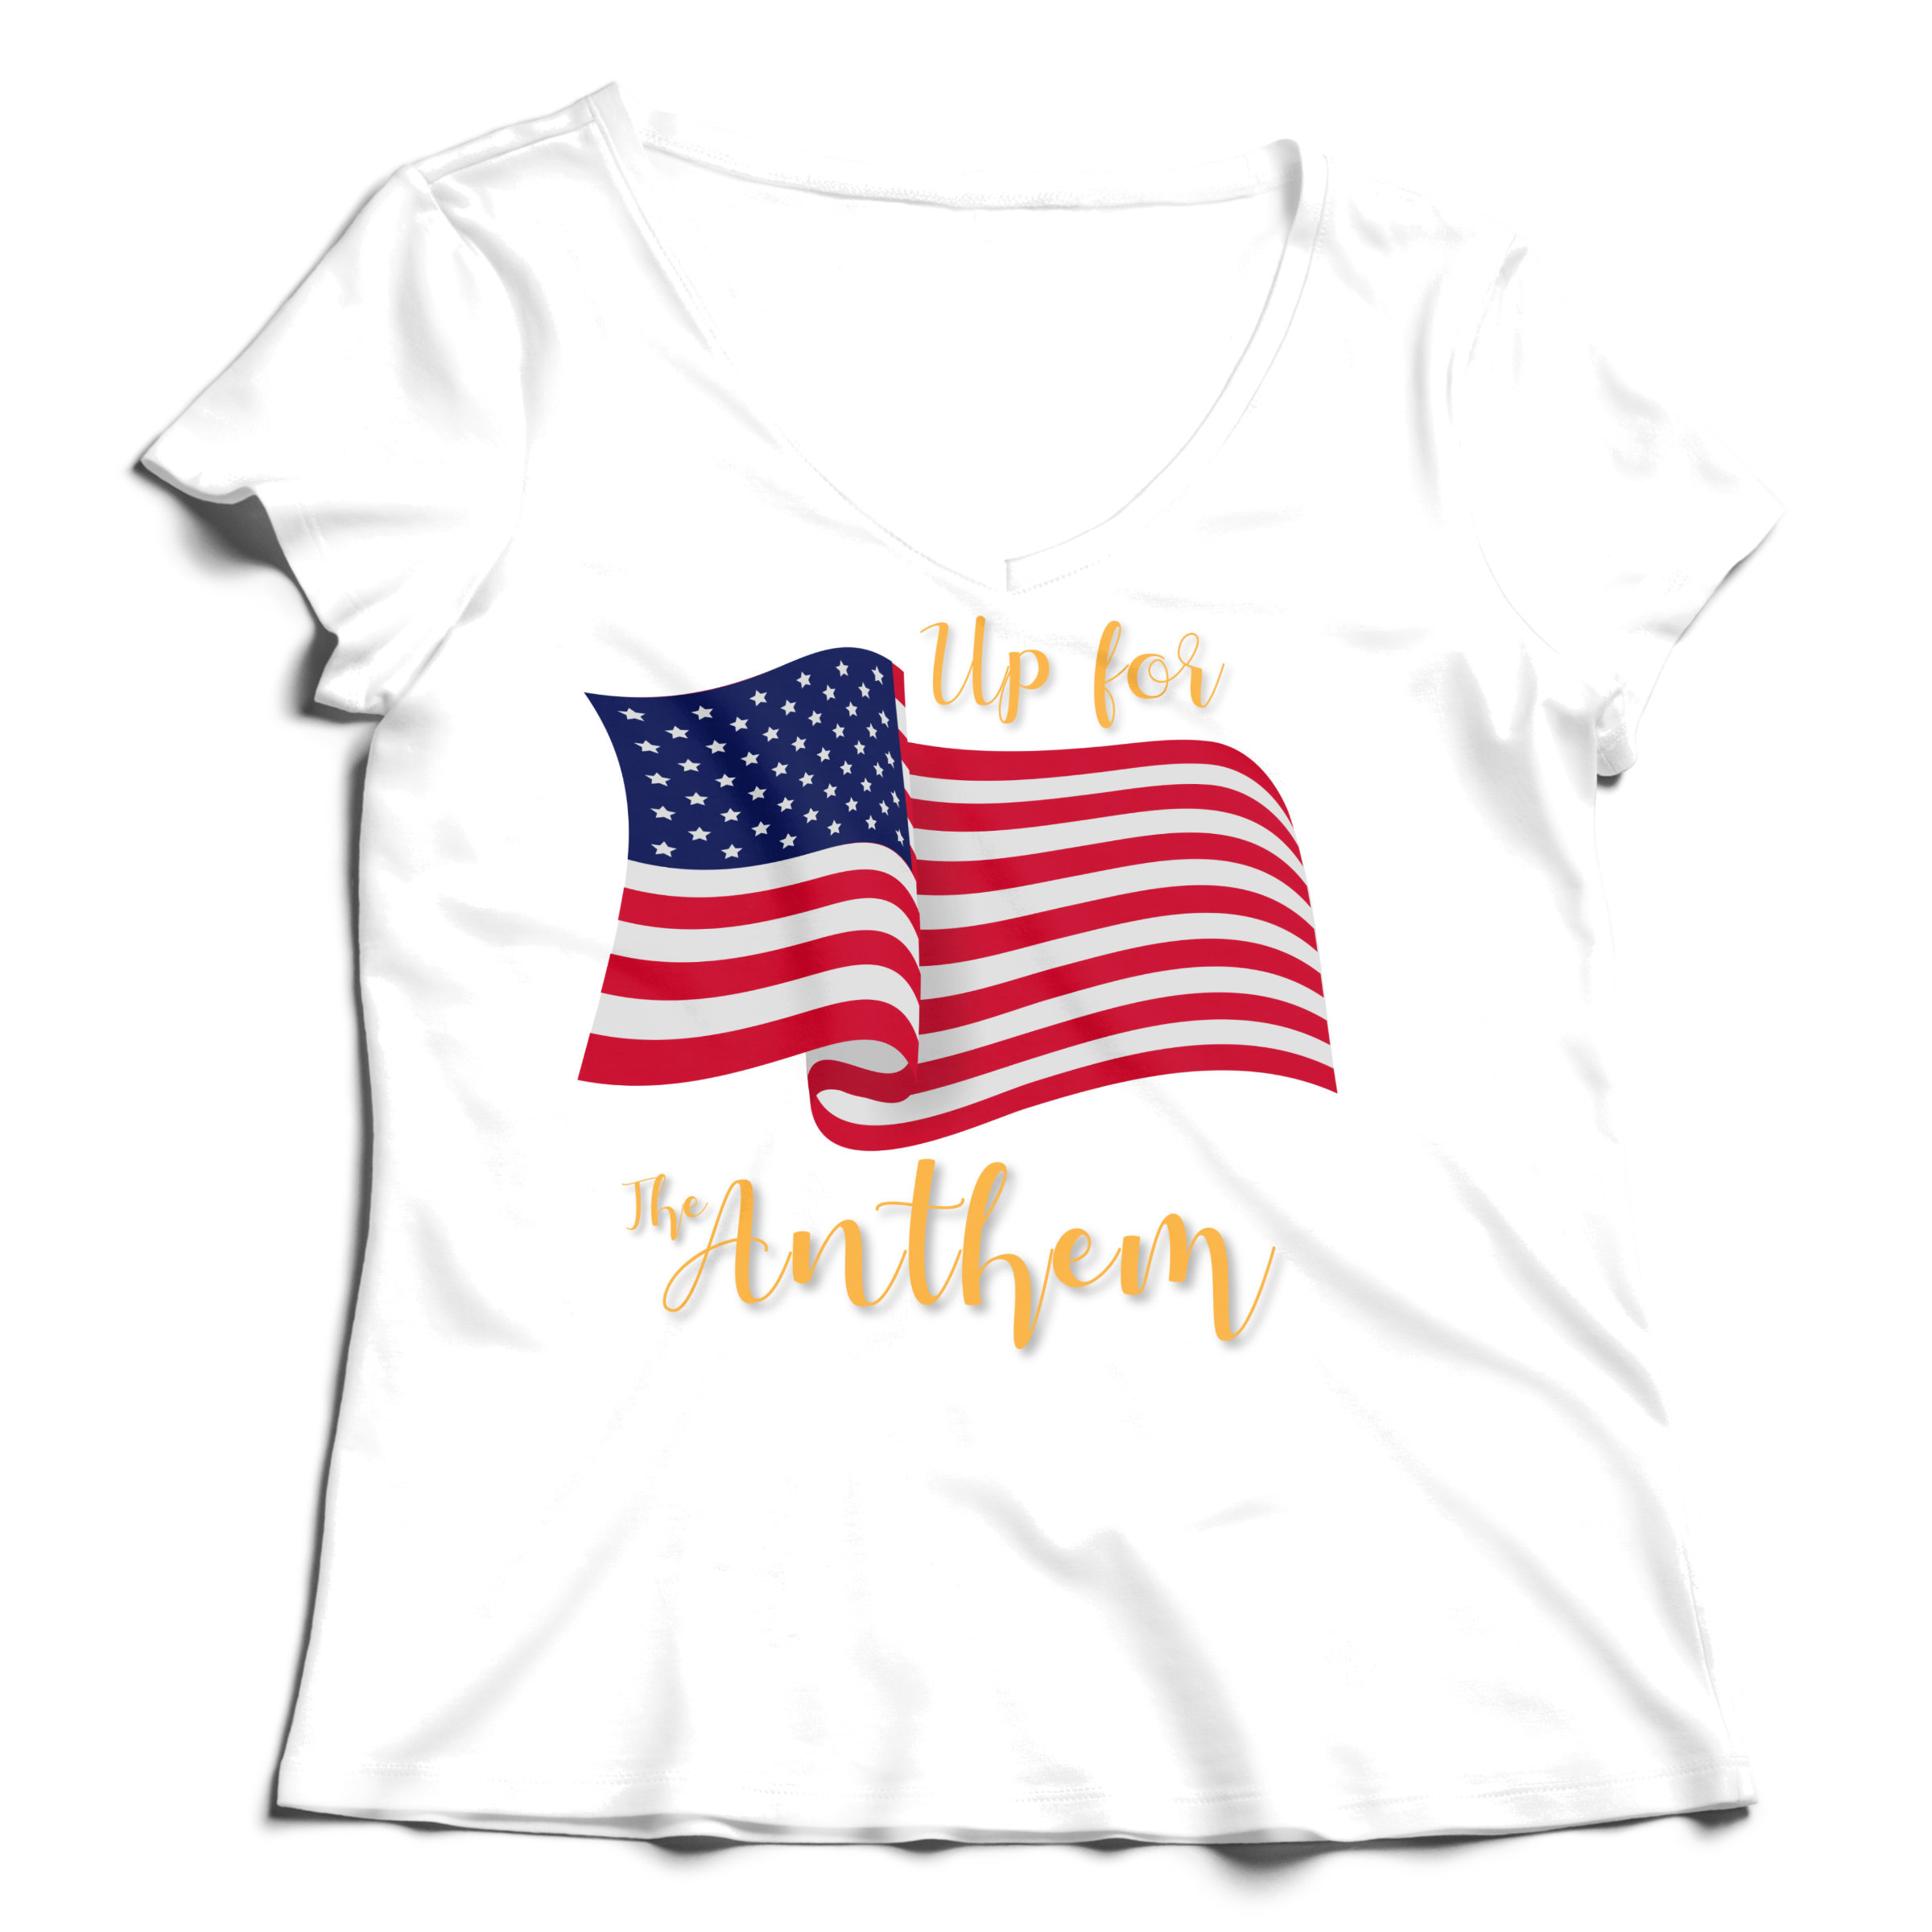 Woman T-Shirt V-Neck Up for the Anthem (2) - White